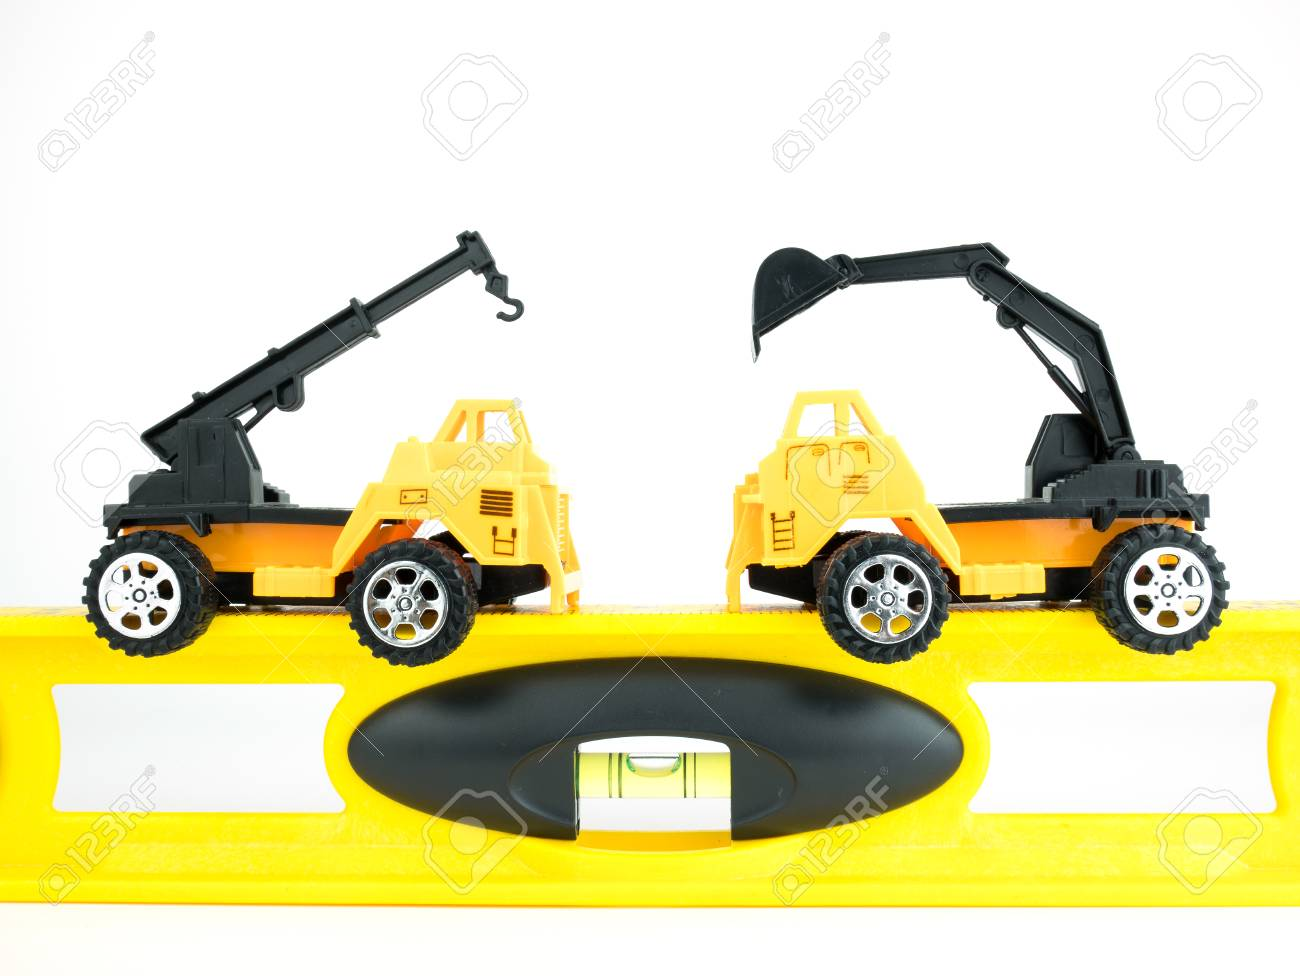 Digger Toy Toy Crane Car And Mechanical Digger With Building Level On White